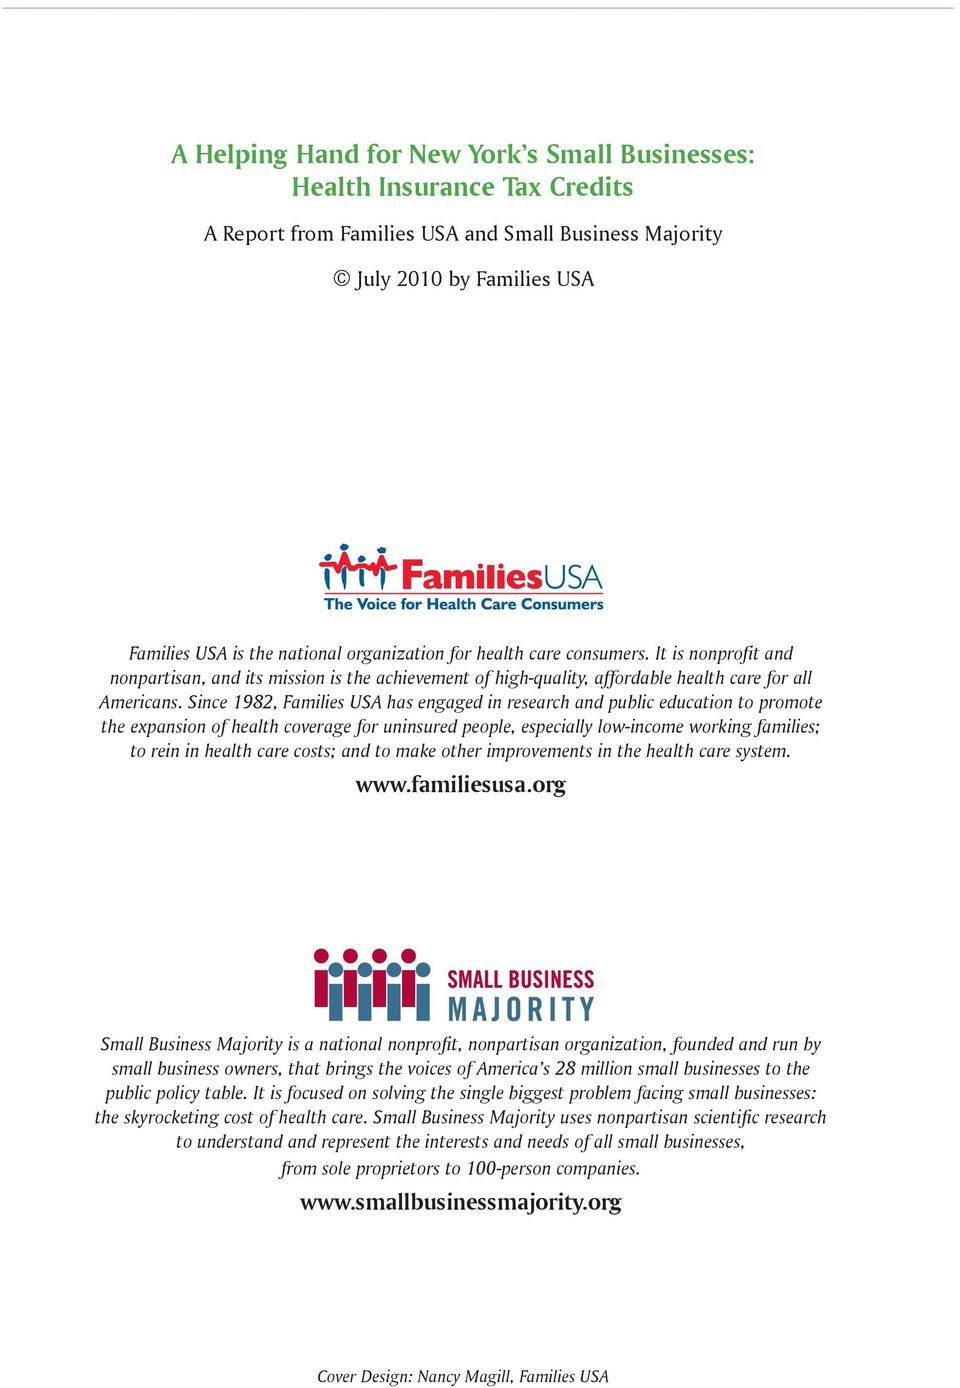 Since 1982, Families USA has engaged in research and public education to promote the expansion of health coverage for uninsured people, especially low-income working families; to rein in health care